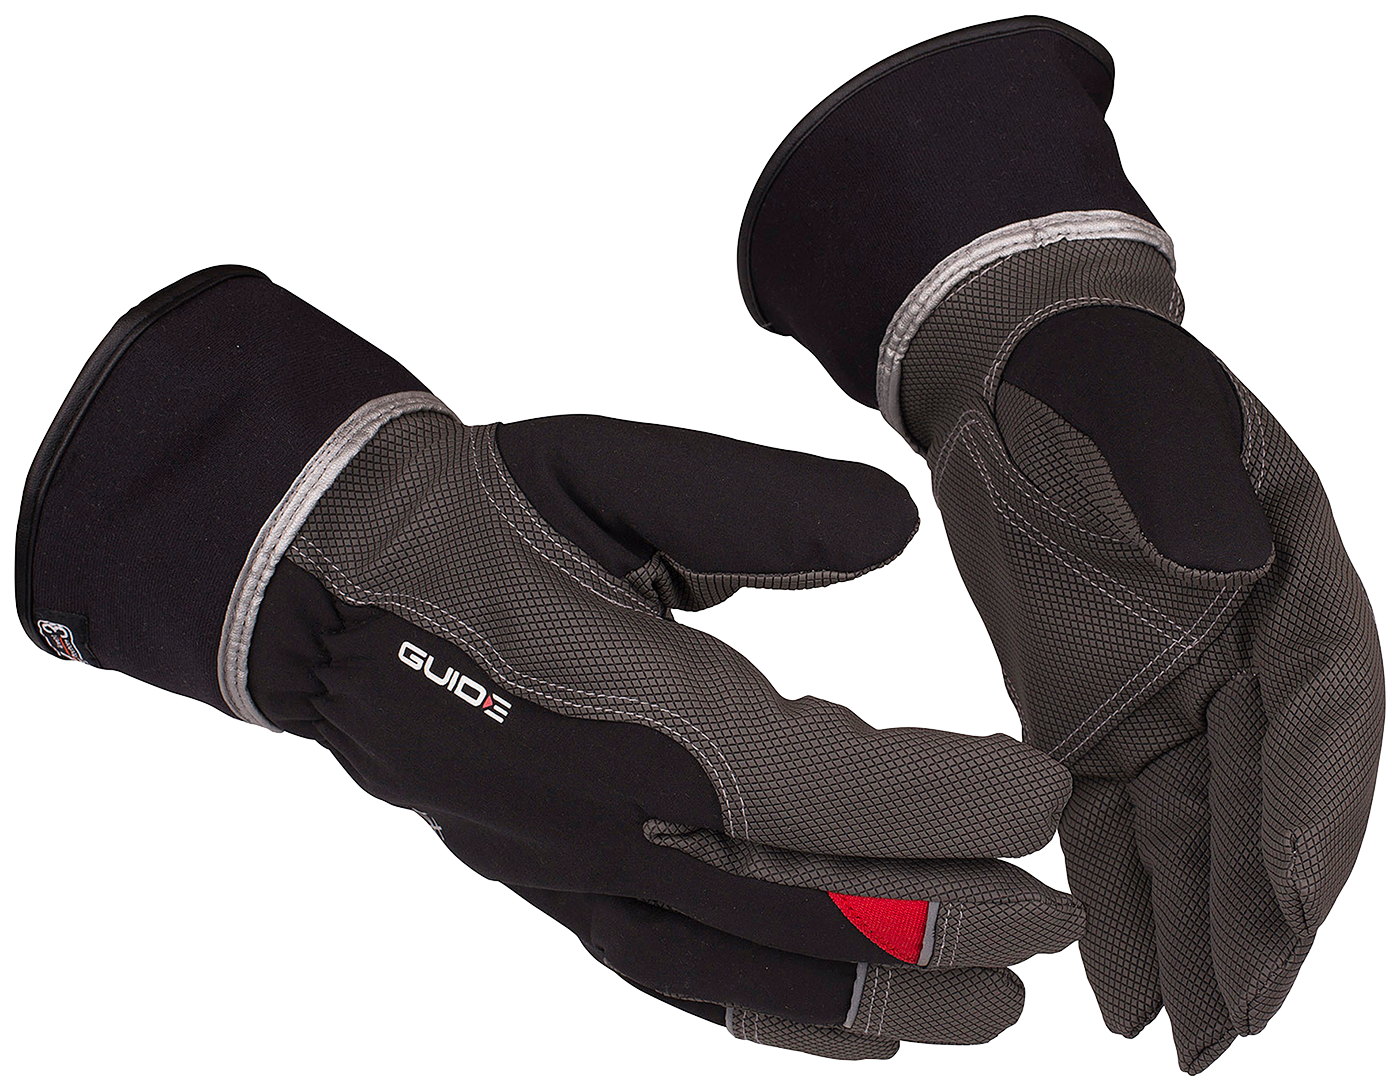 Warm Lined Glove GUIDE 5154W